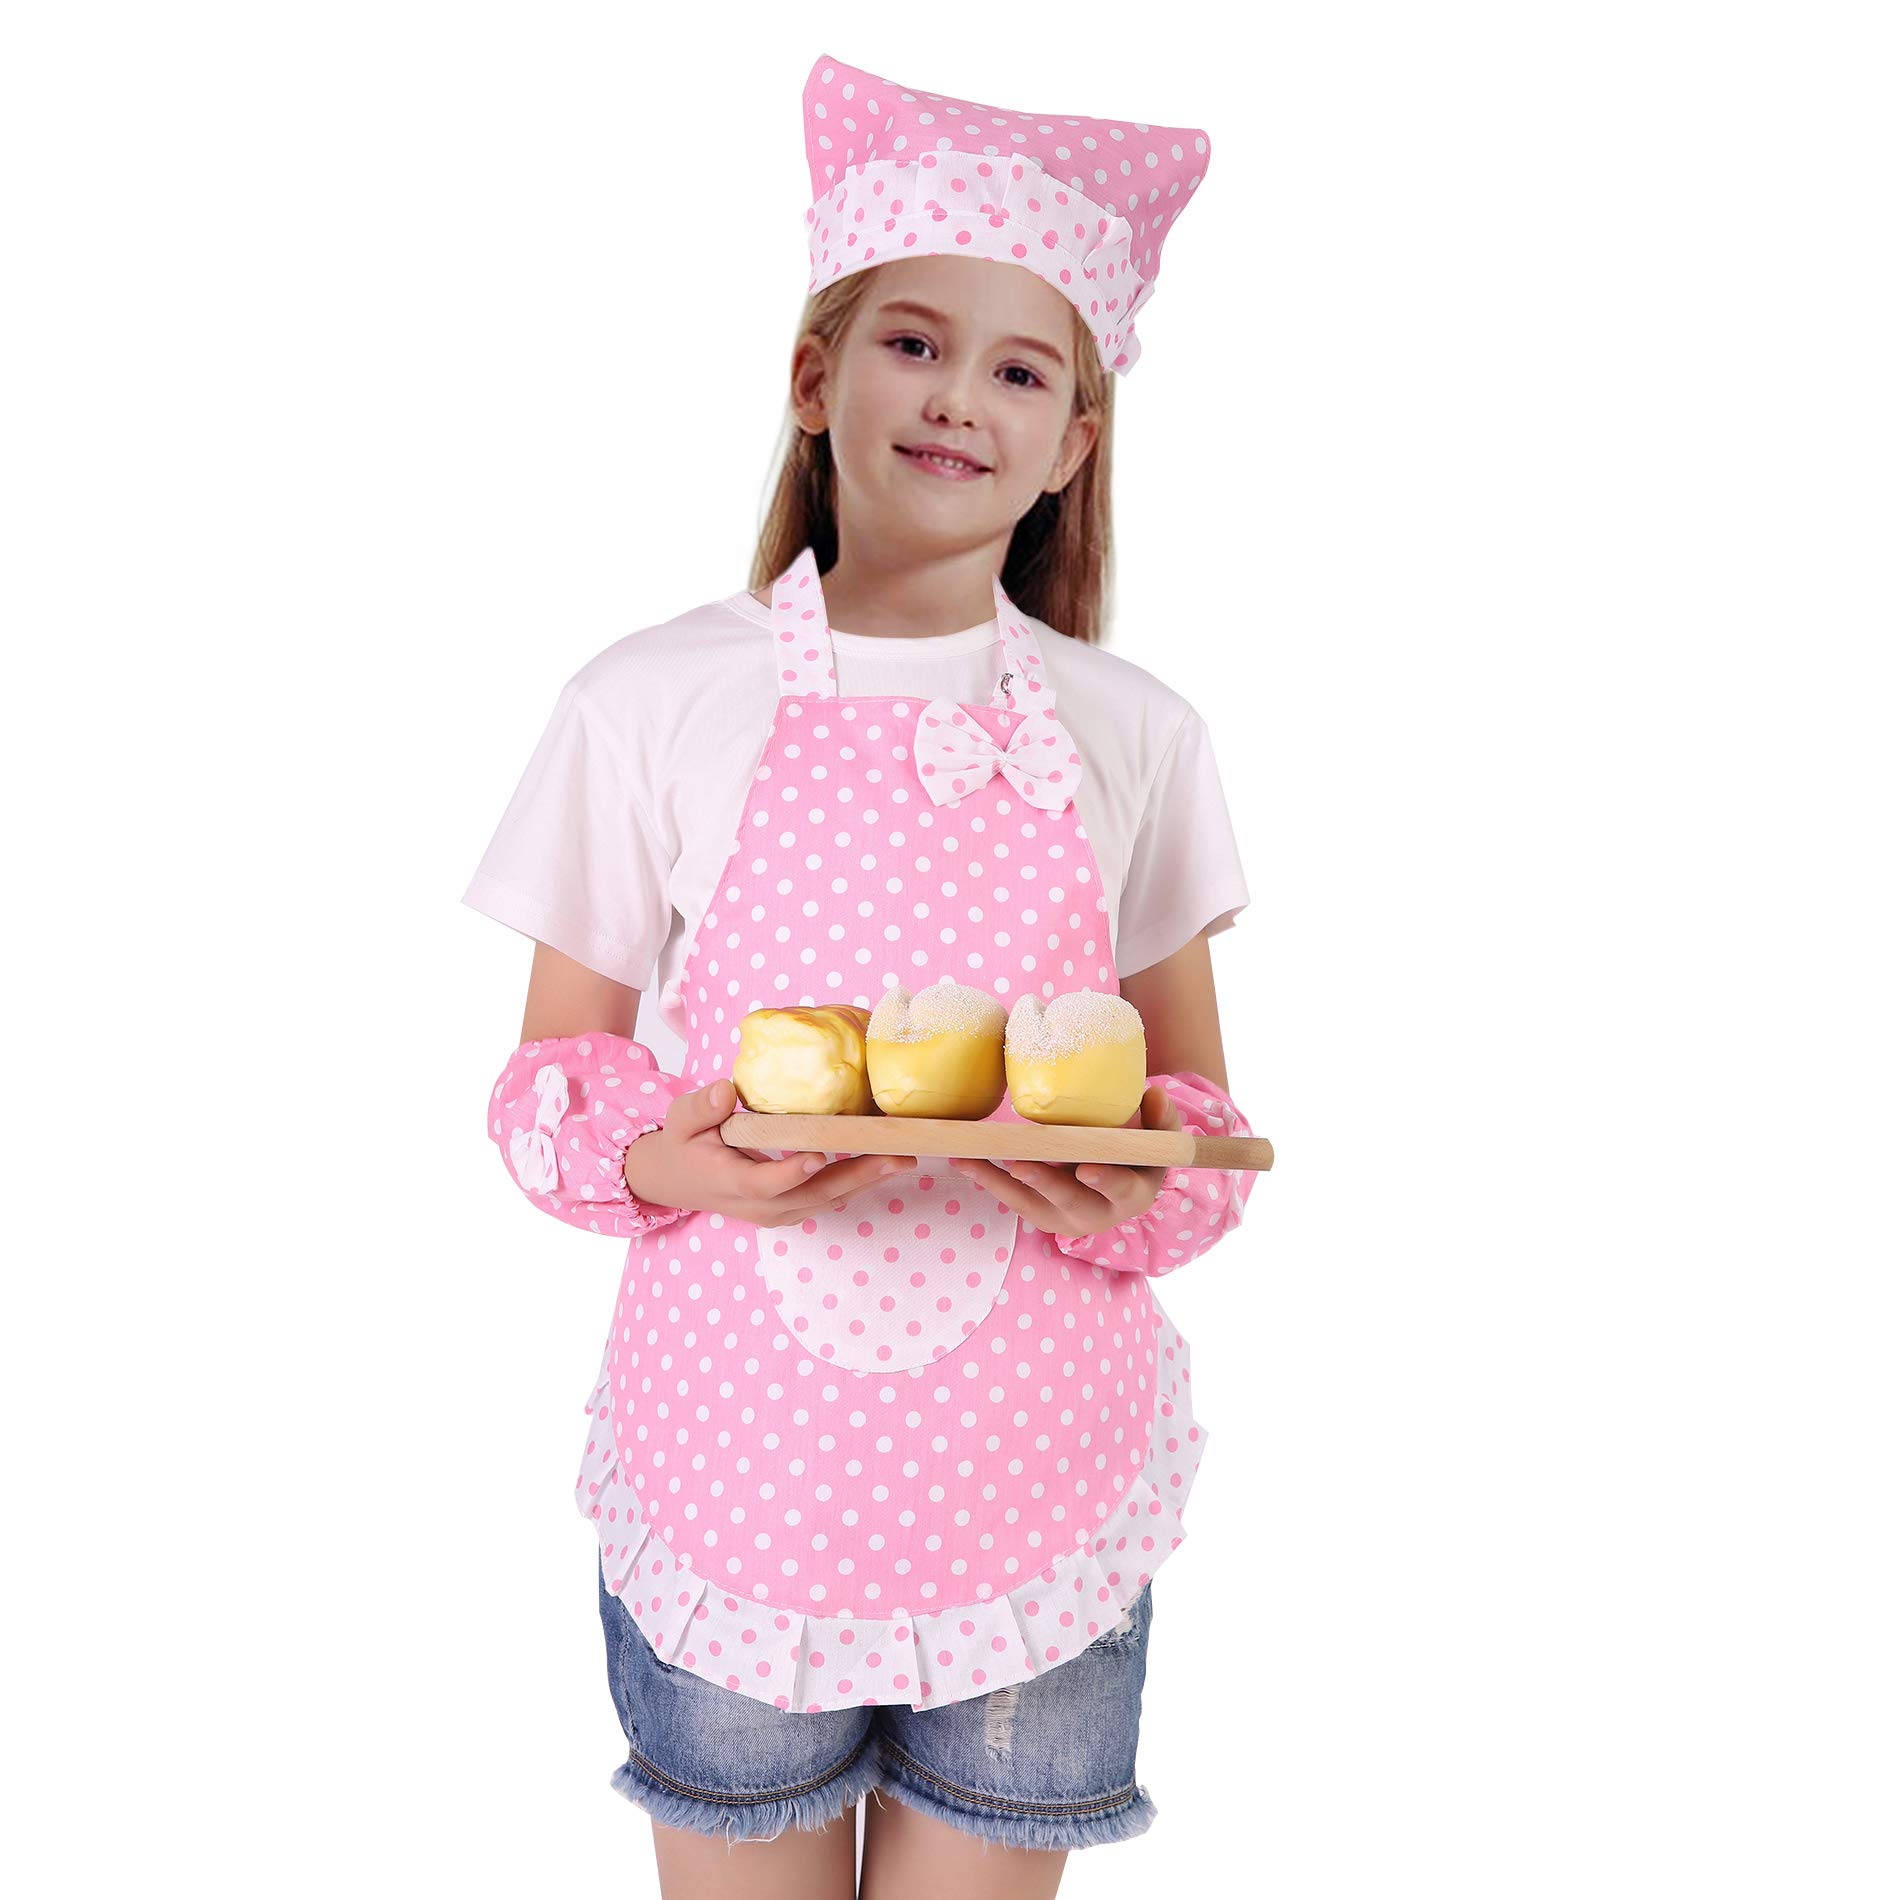 Apron set for children